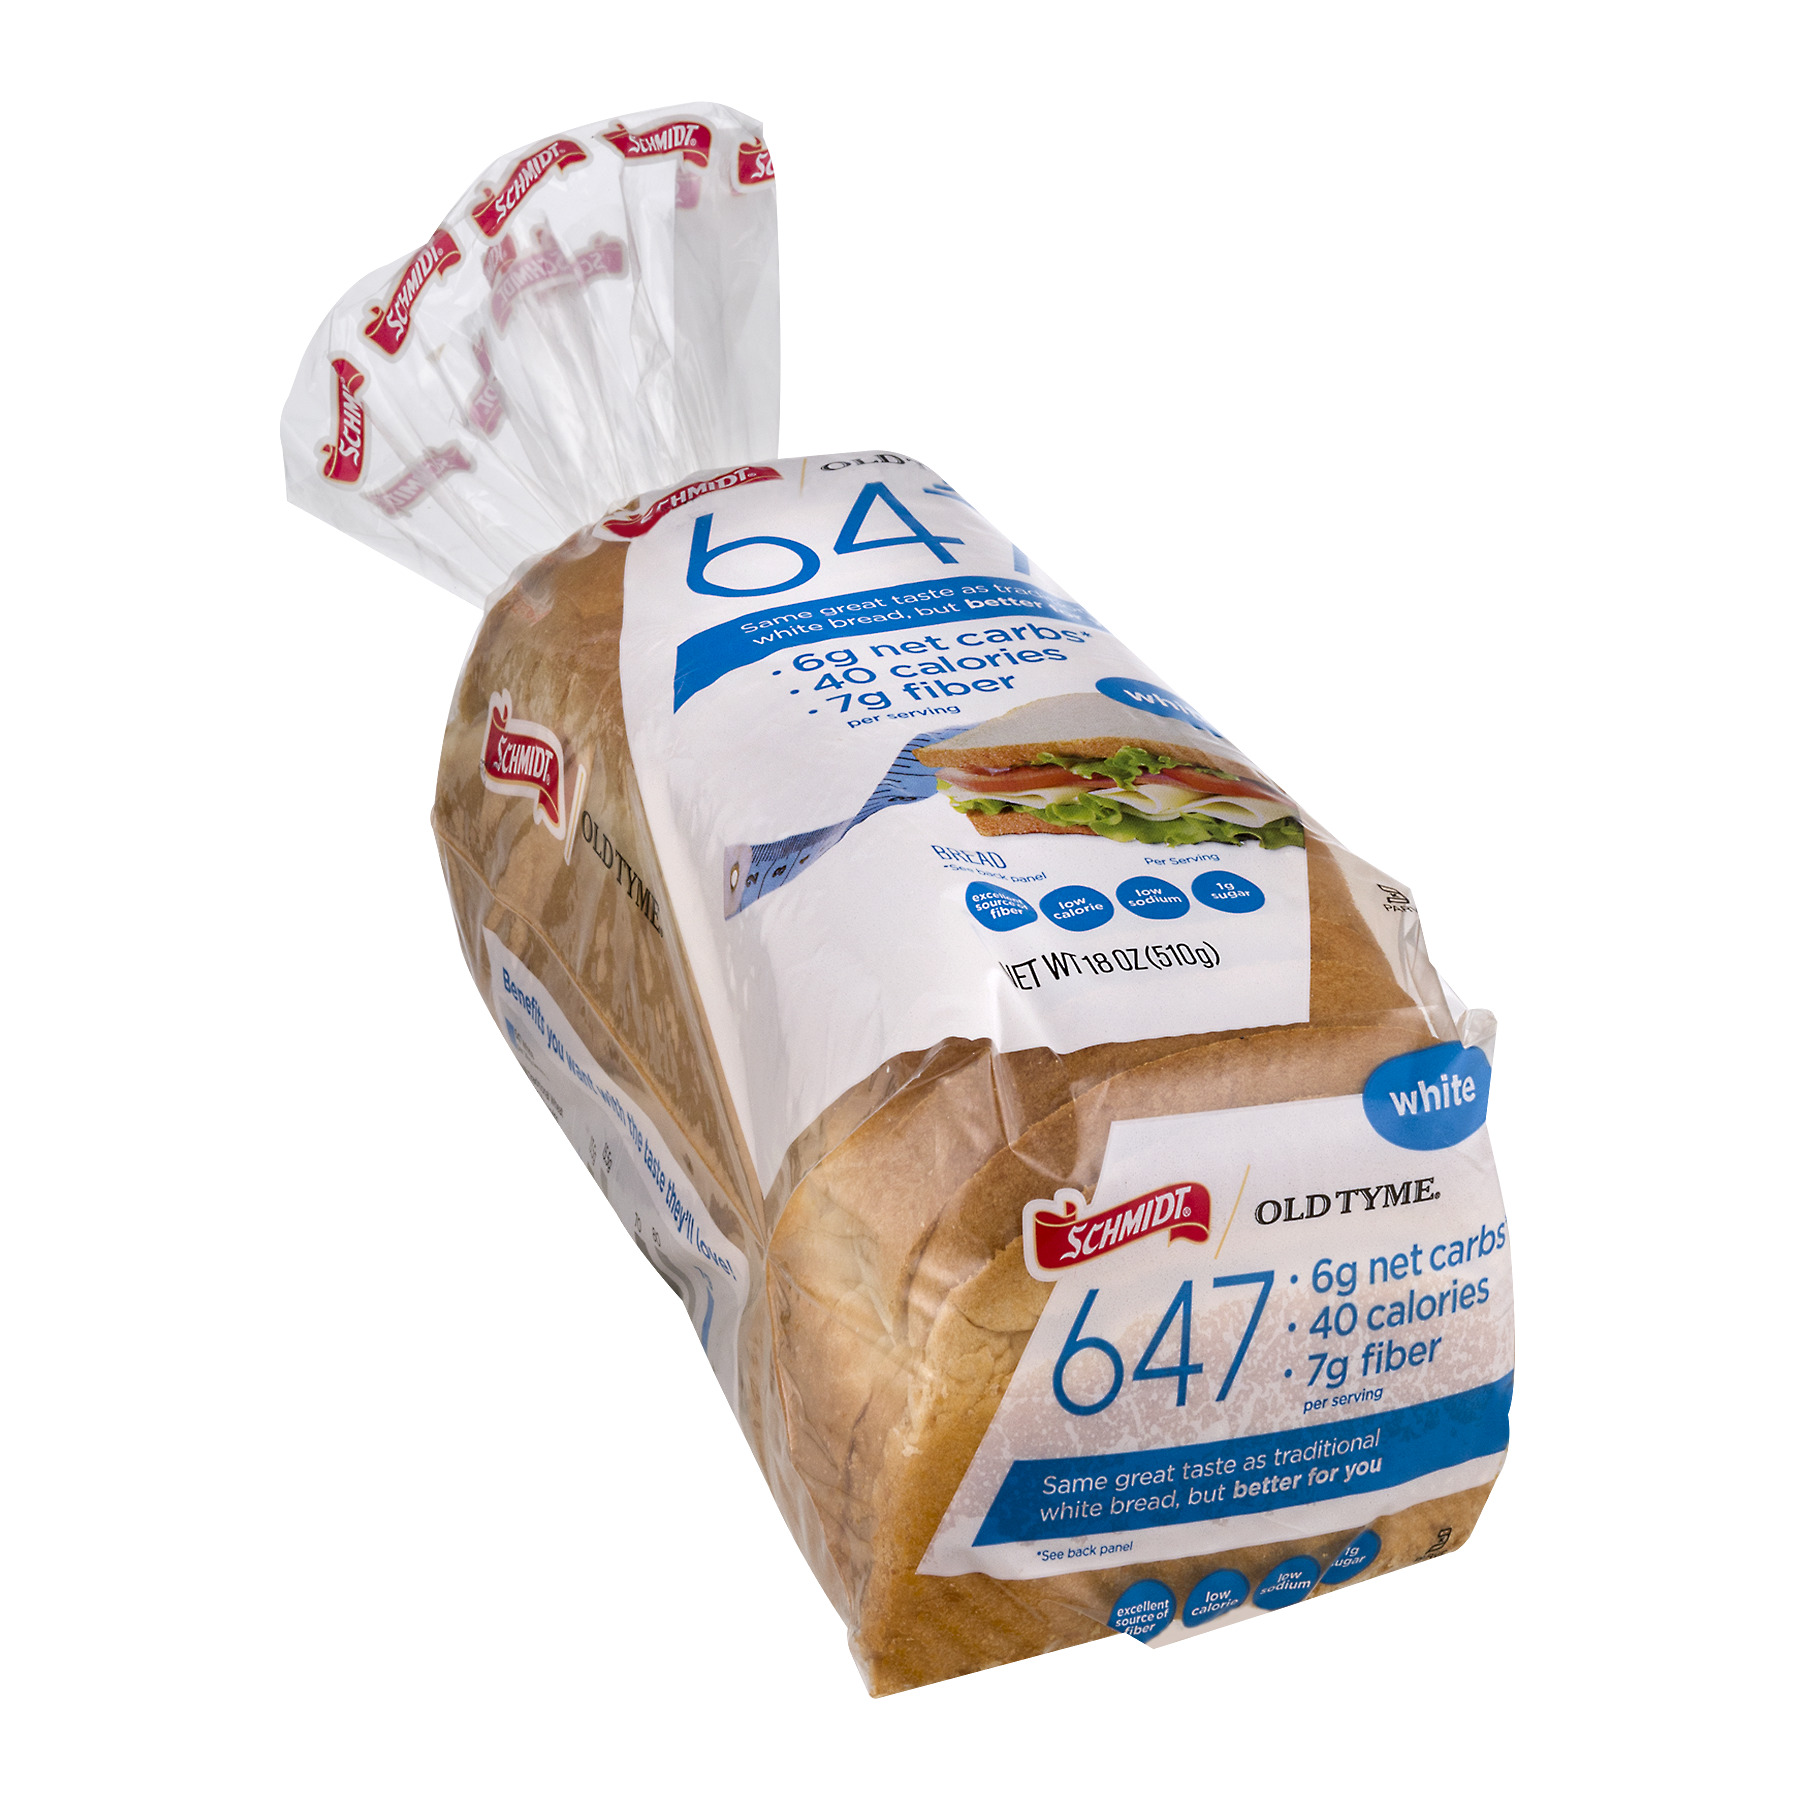 Schmidt Old Tyme 647 White Bread 18 oz - Walmart com